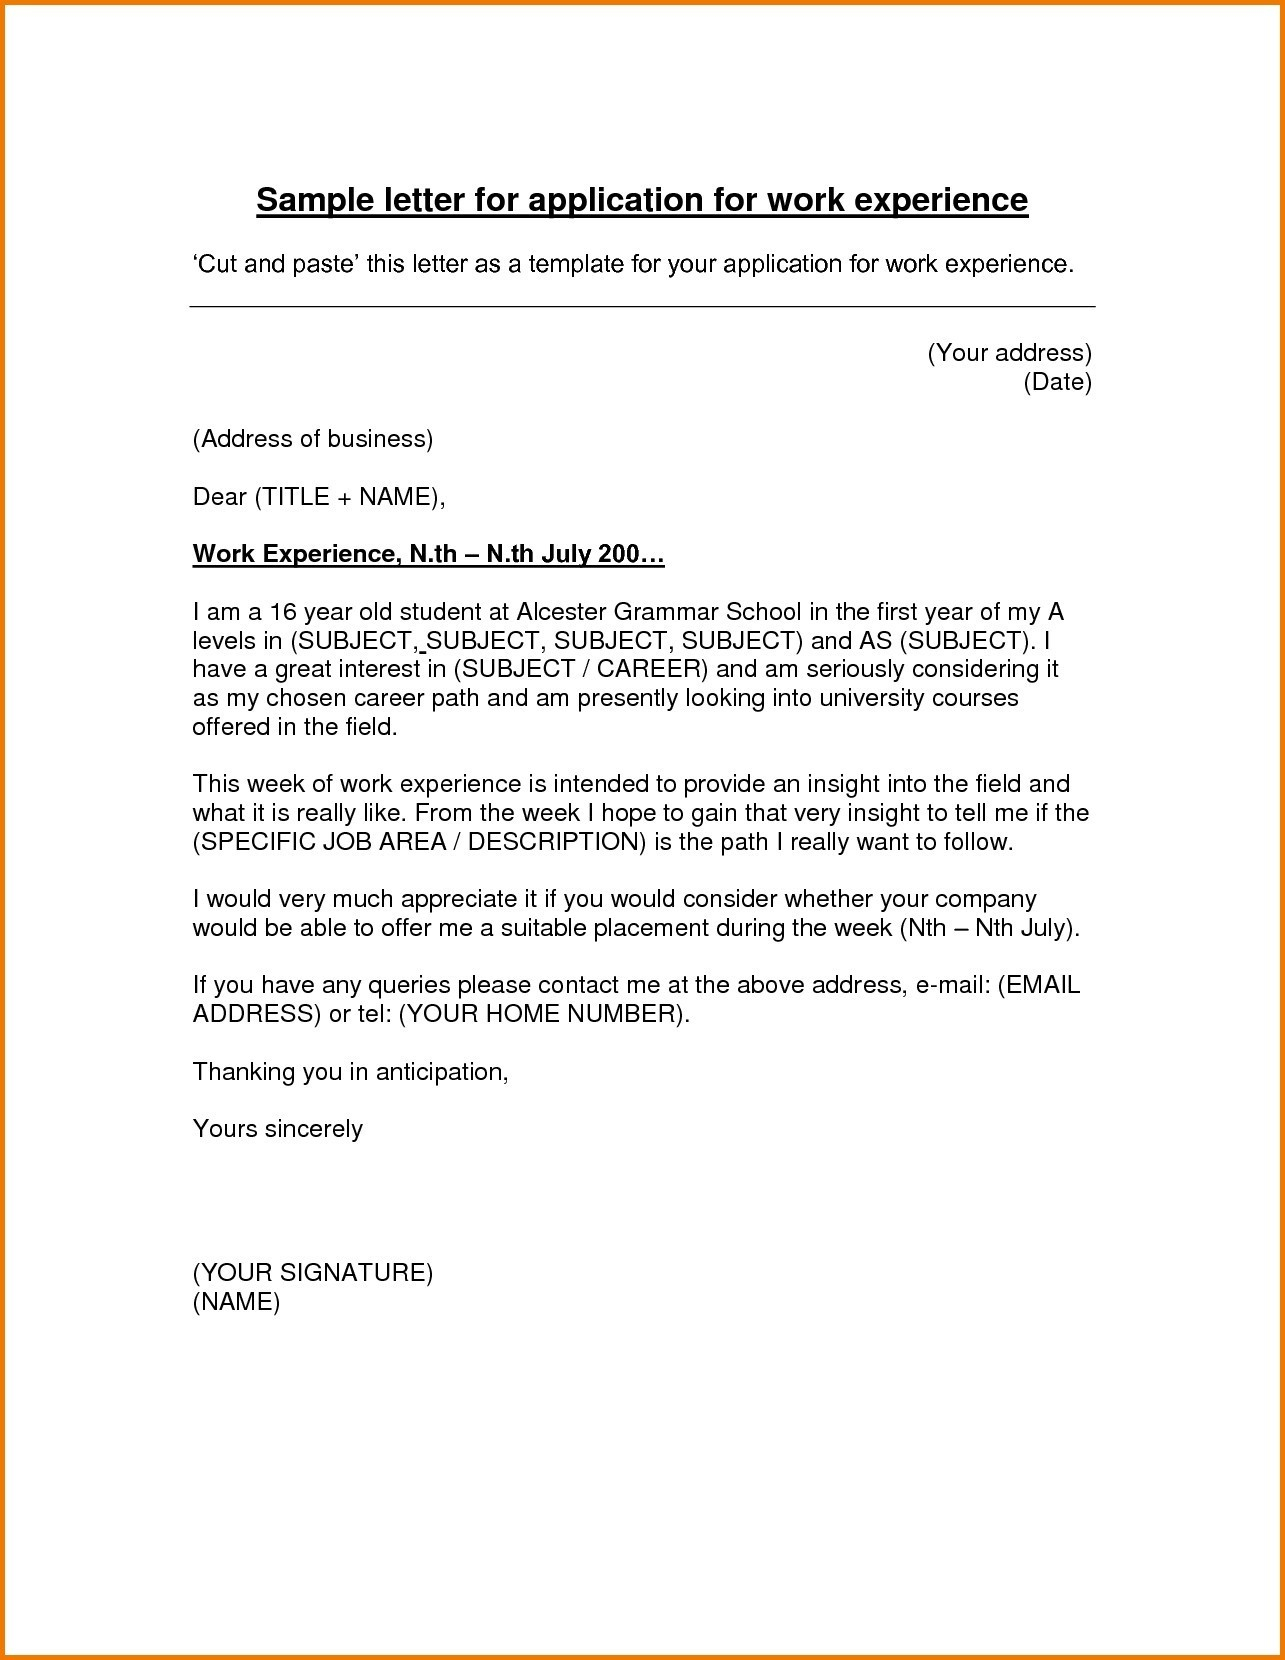 Hvac Cover Letter Template - Experience Certificate format for Electrical Design Engineer Copy